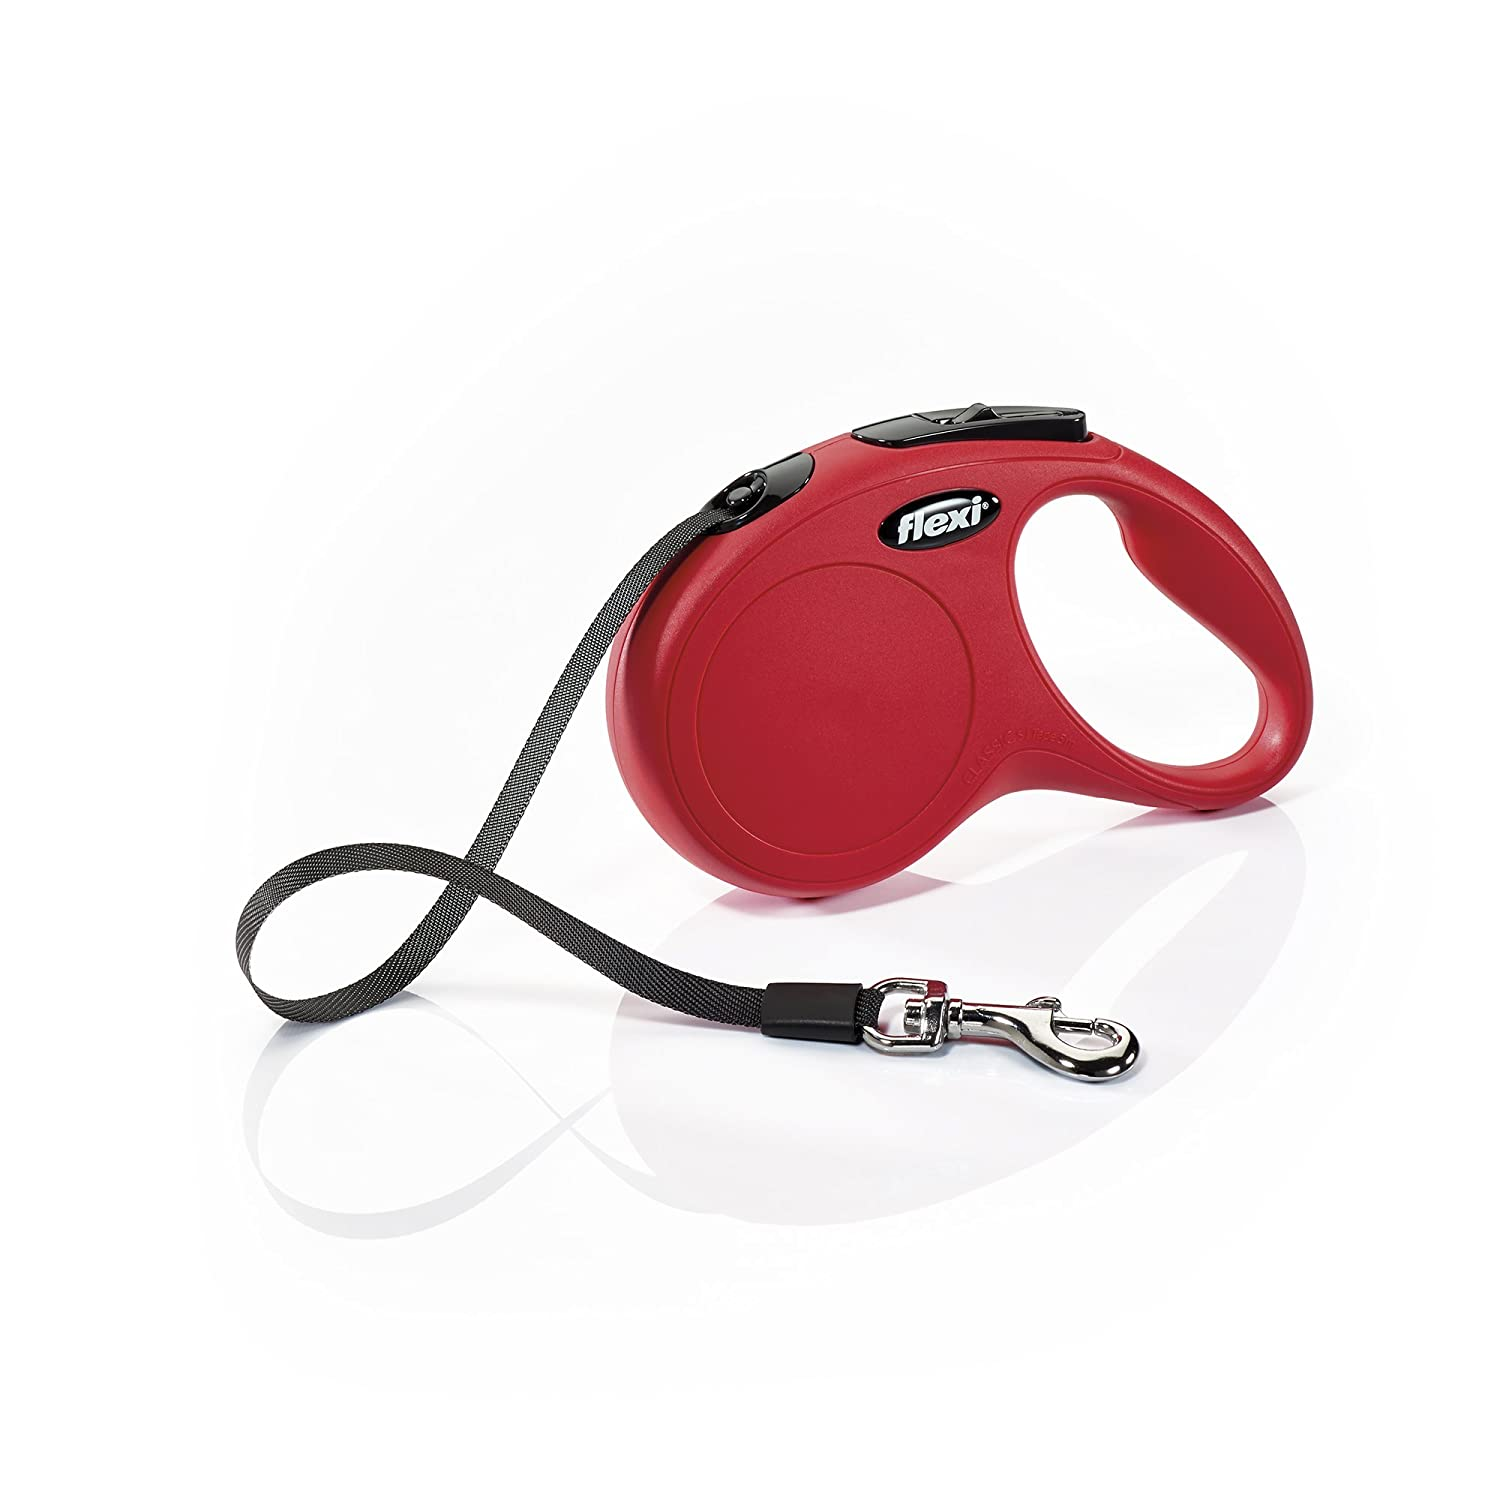 Red Small, 16 ft Red Small, 16 ft Flexi New Classic Retractable Dog Leash (Tape), 16 ft, Small, Red